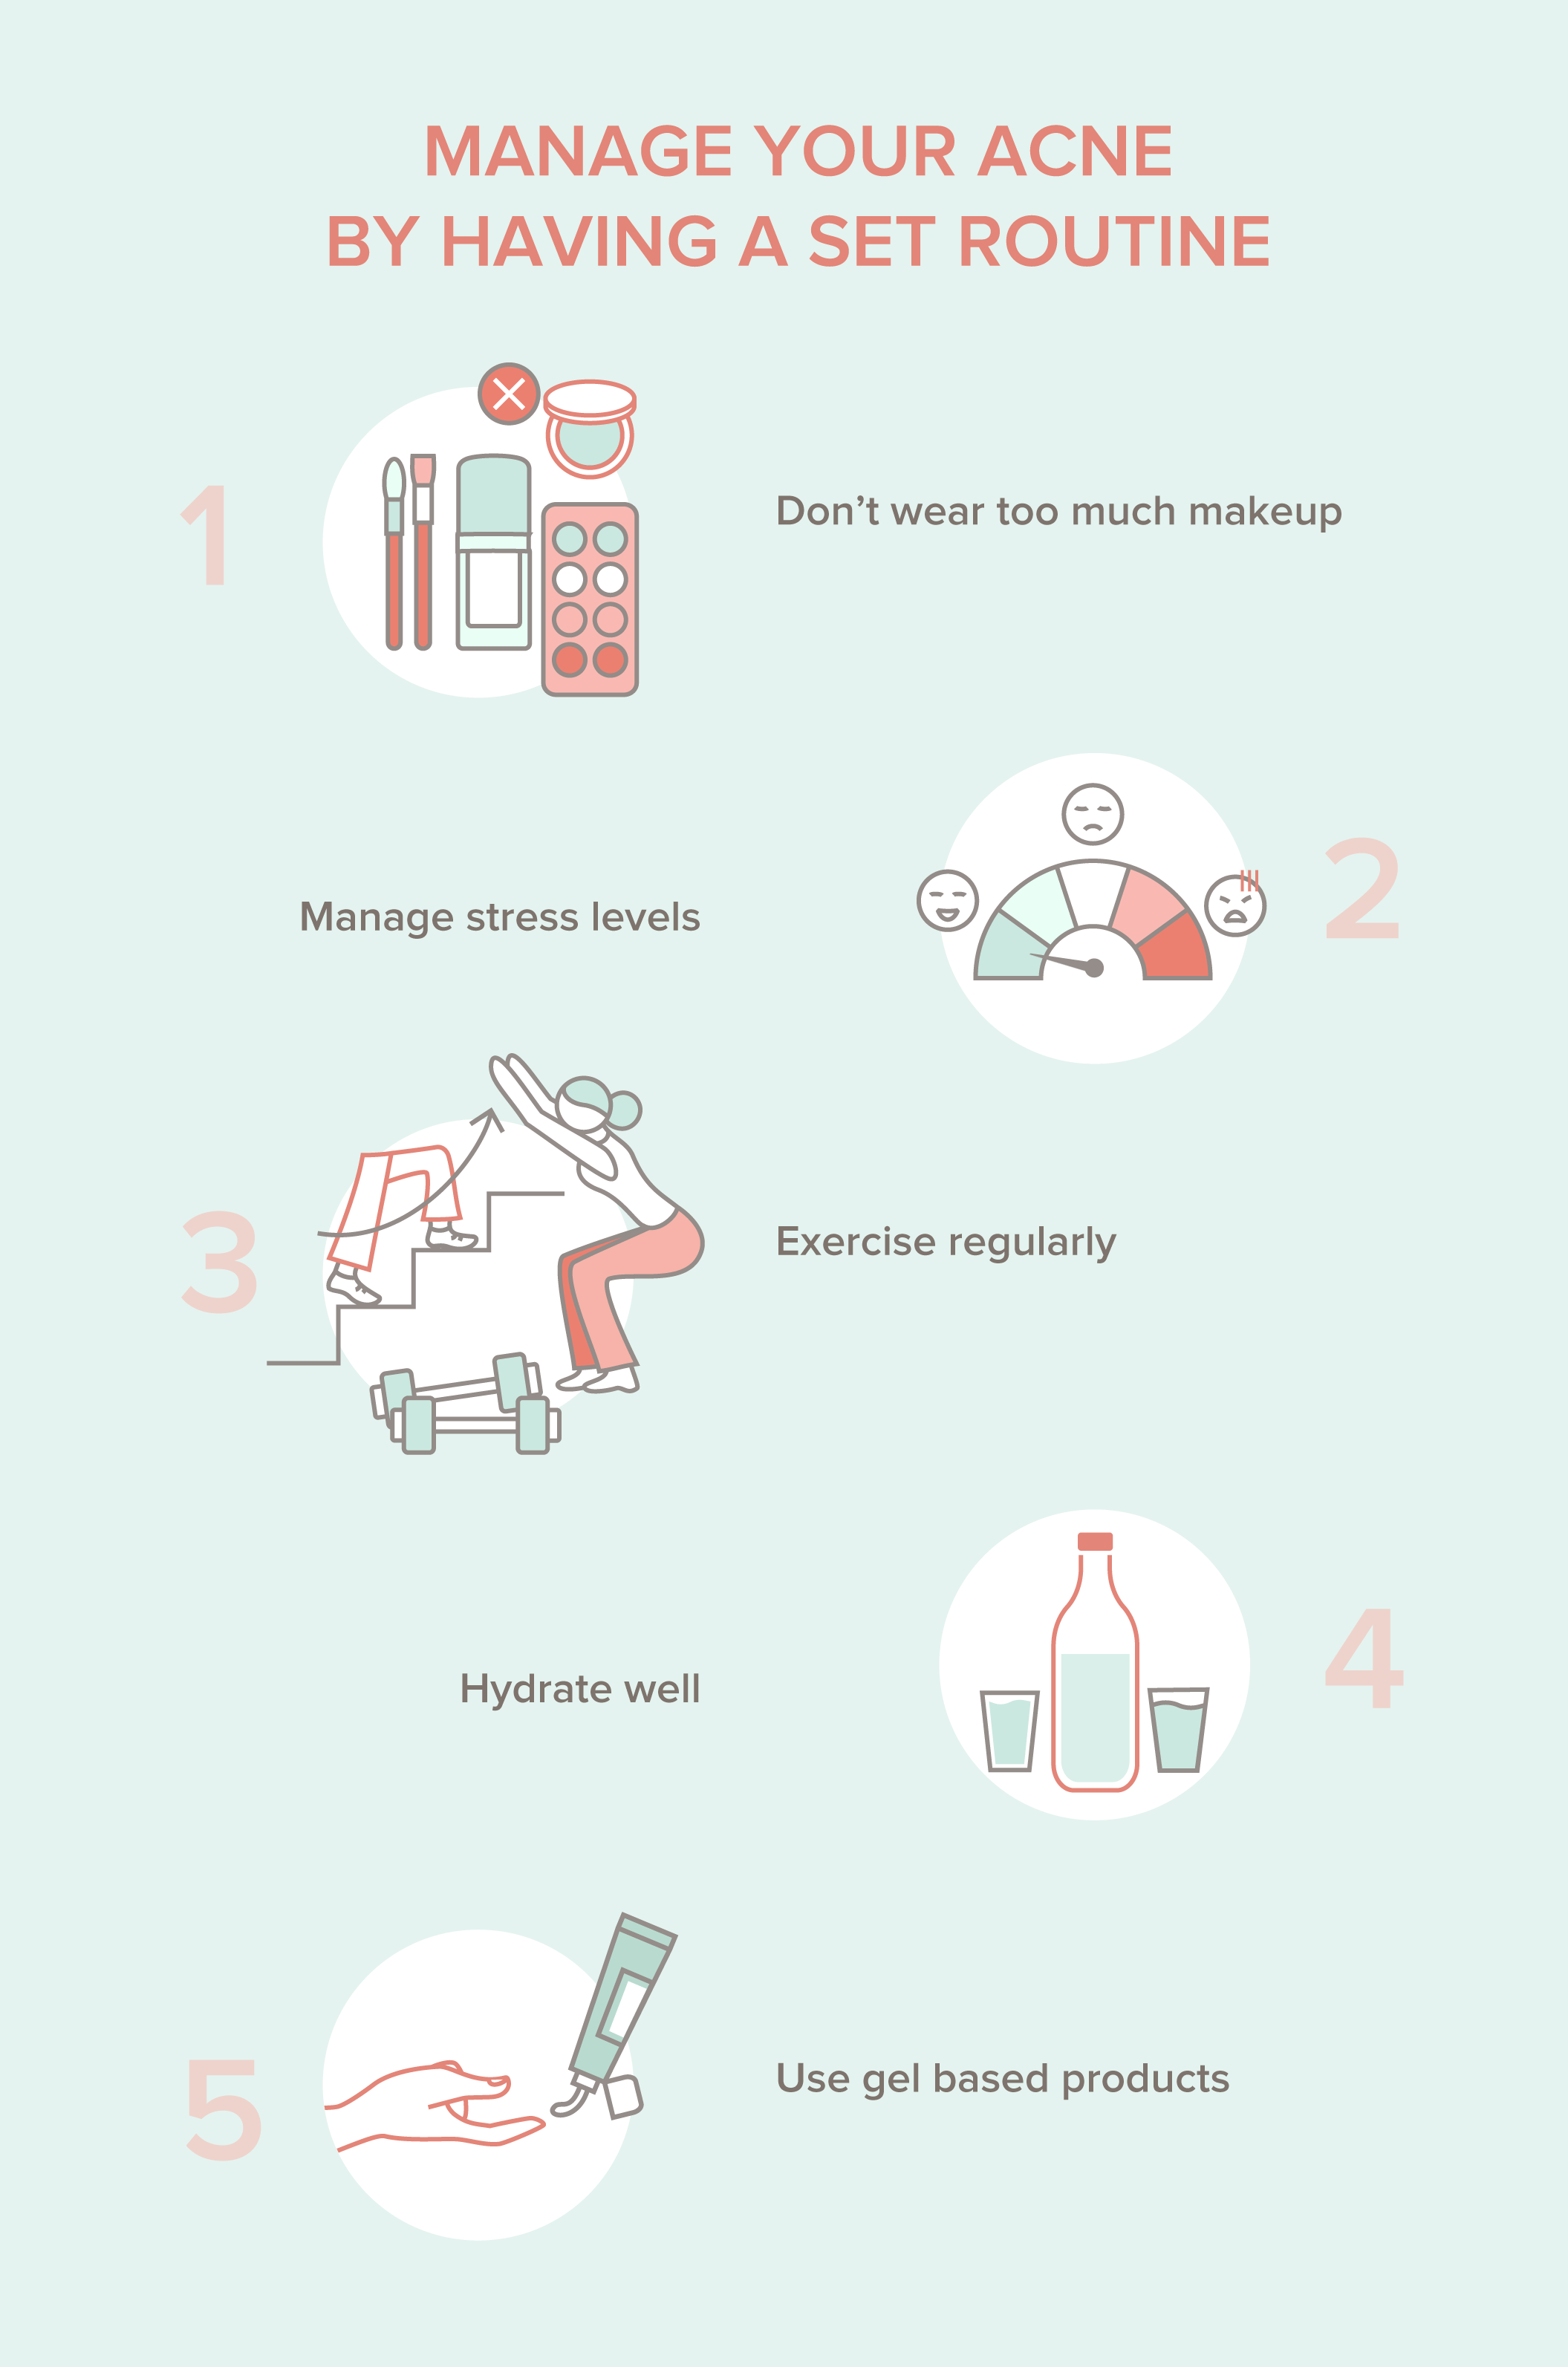 Top 5 Home Remedies for Acne Treatment